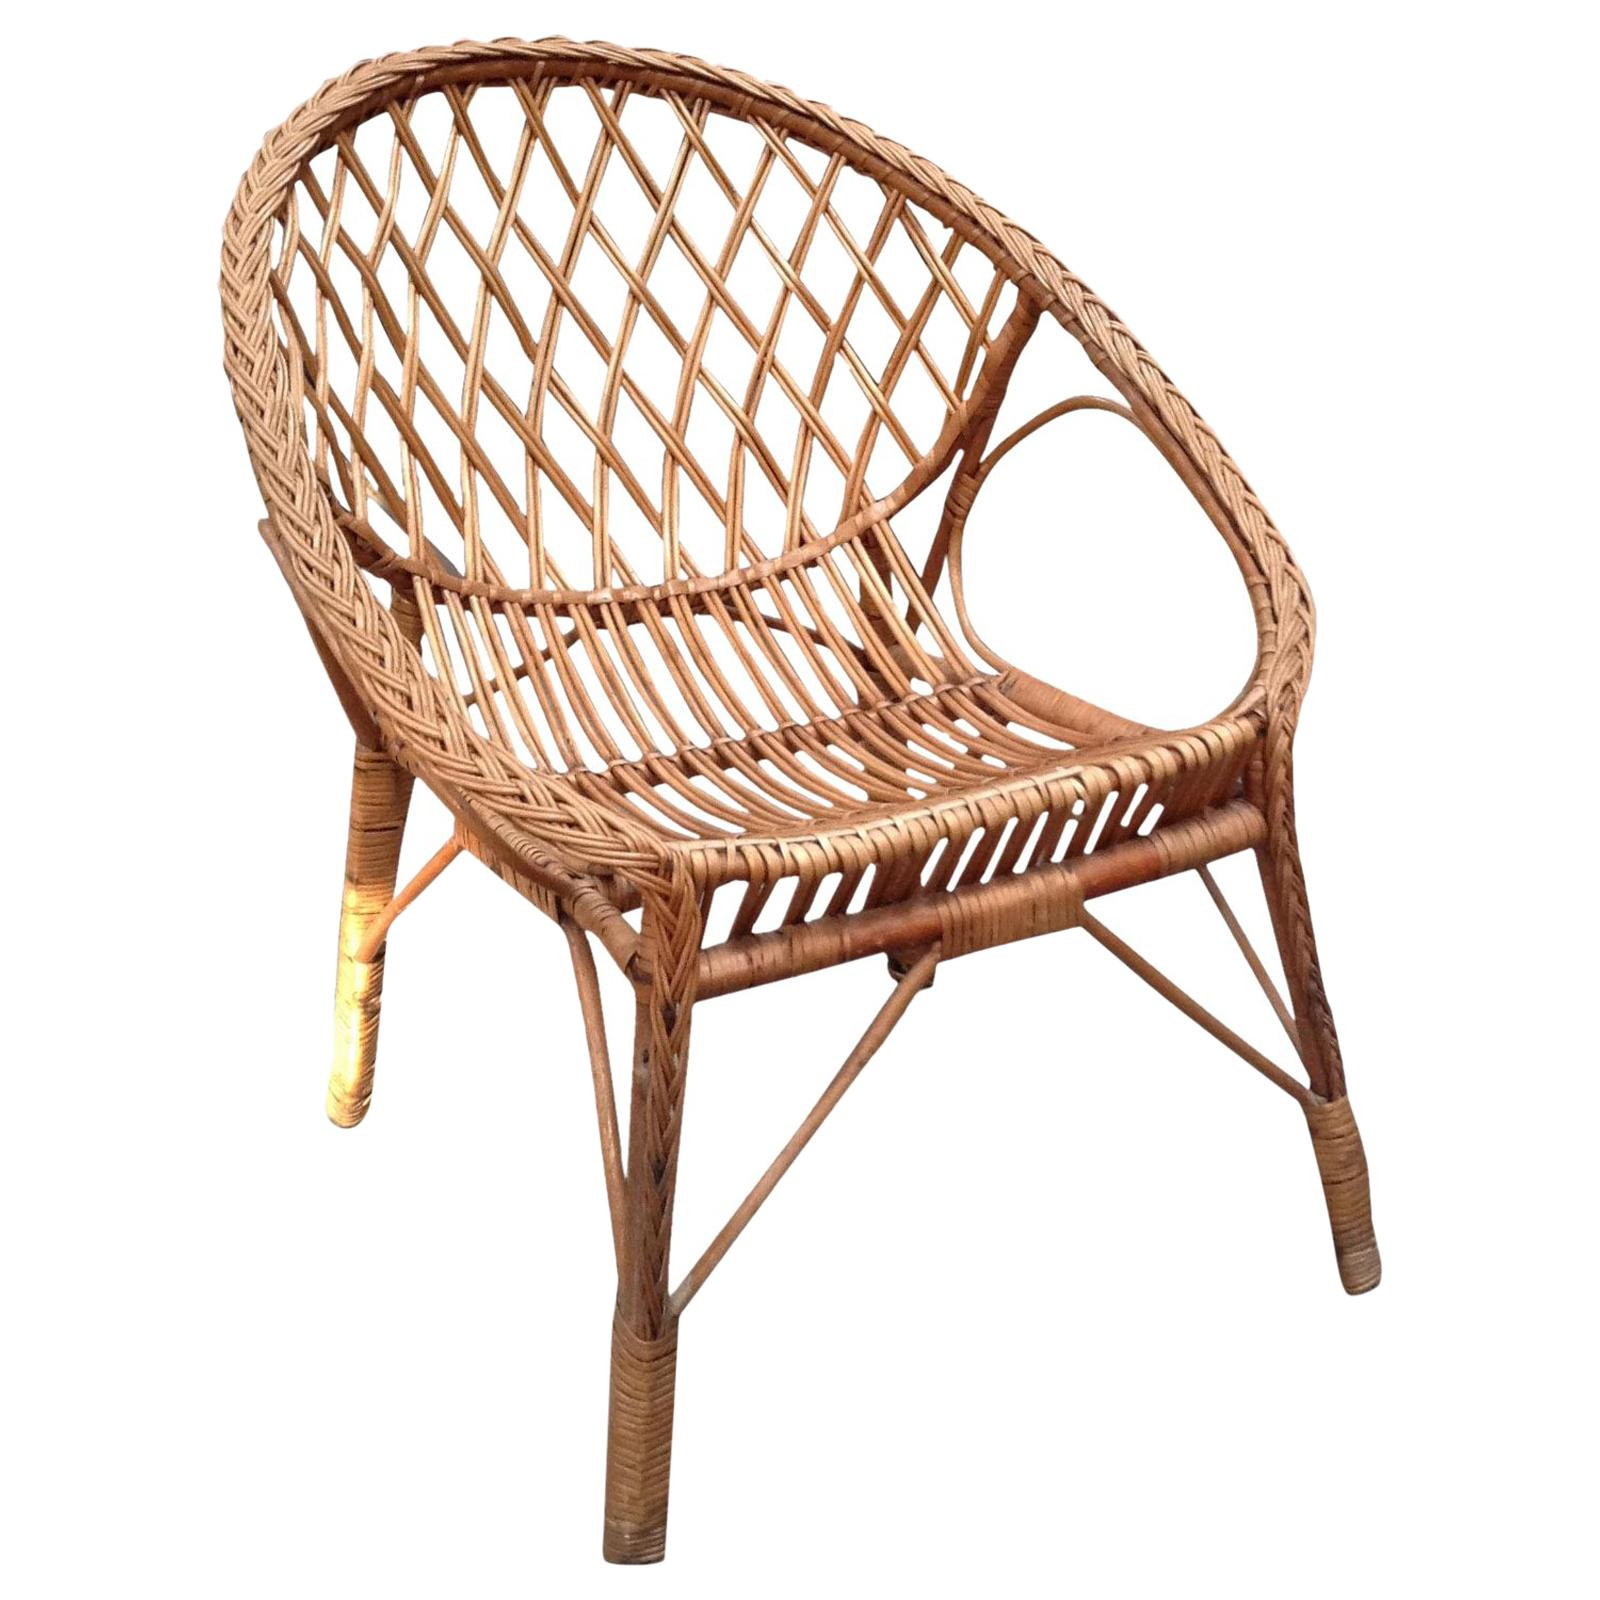 Vintage Rattan Chair Vintage European Rattan Chair